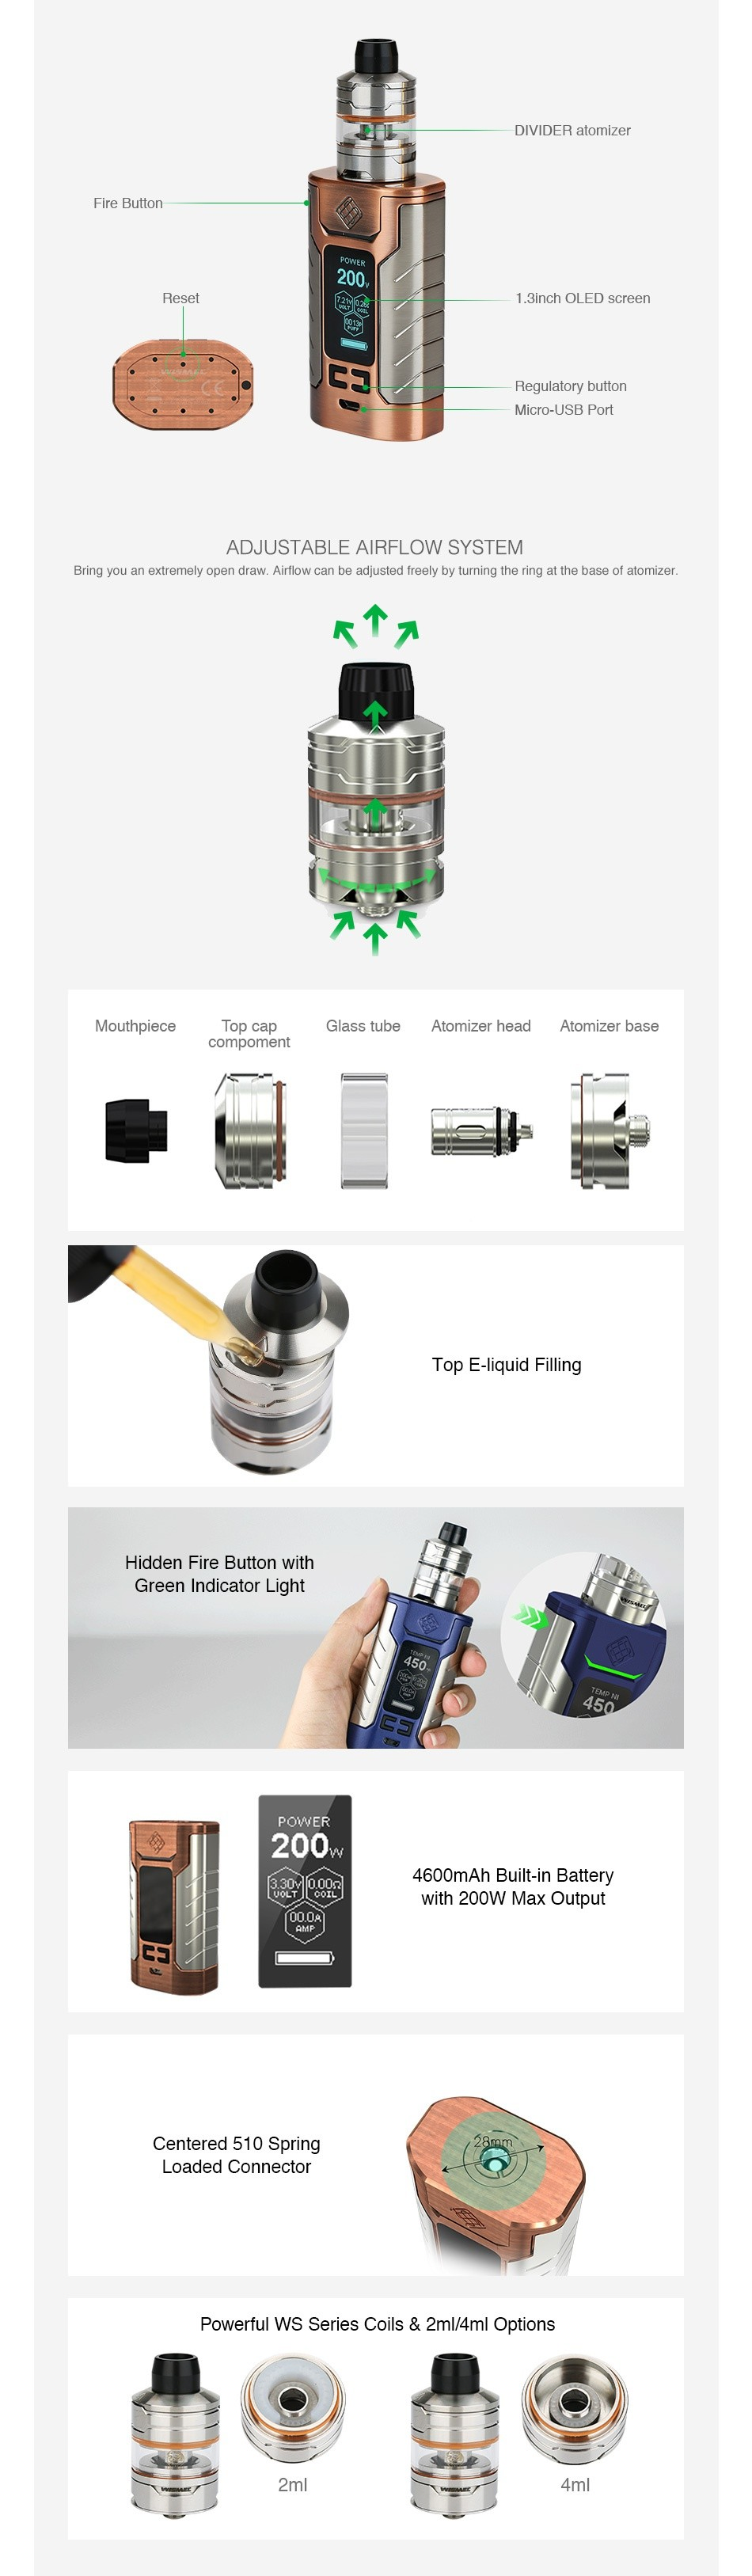 WISMEC SINUOUS FJ200 with Divider TC Kit 4600mAh 1 3Inch OLED scrccn E ADJUSTABLE AIRFLOW SYSTEM Bring ww an extremely Dnen draw  Airtknw can be aa ju sted reely ny tiring the ring at the hERe of AtomIzer    lass tube Atomizer head Atomizer bas Hidden Fire Button with Green Indicator Light 200 4600mAh Built in Battery Centered 510 Spring Loaded connector Powerful WS Series Coils 2ml 4ml Options   4ml